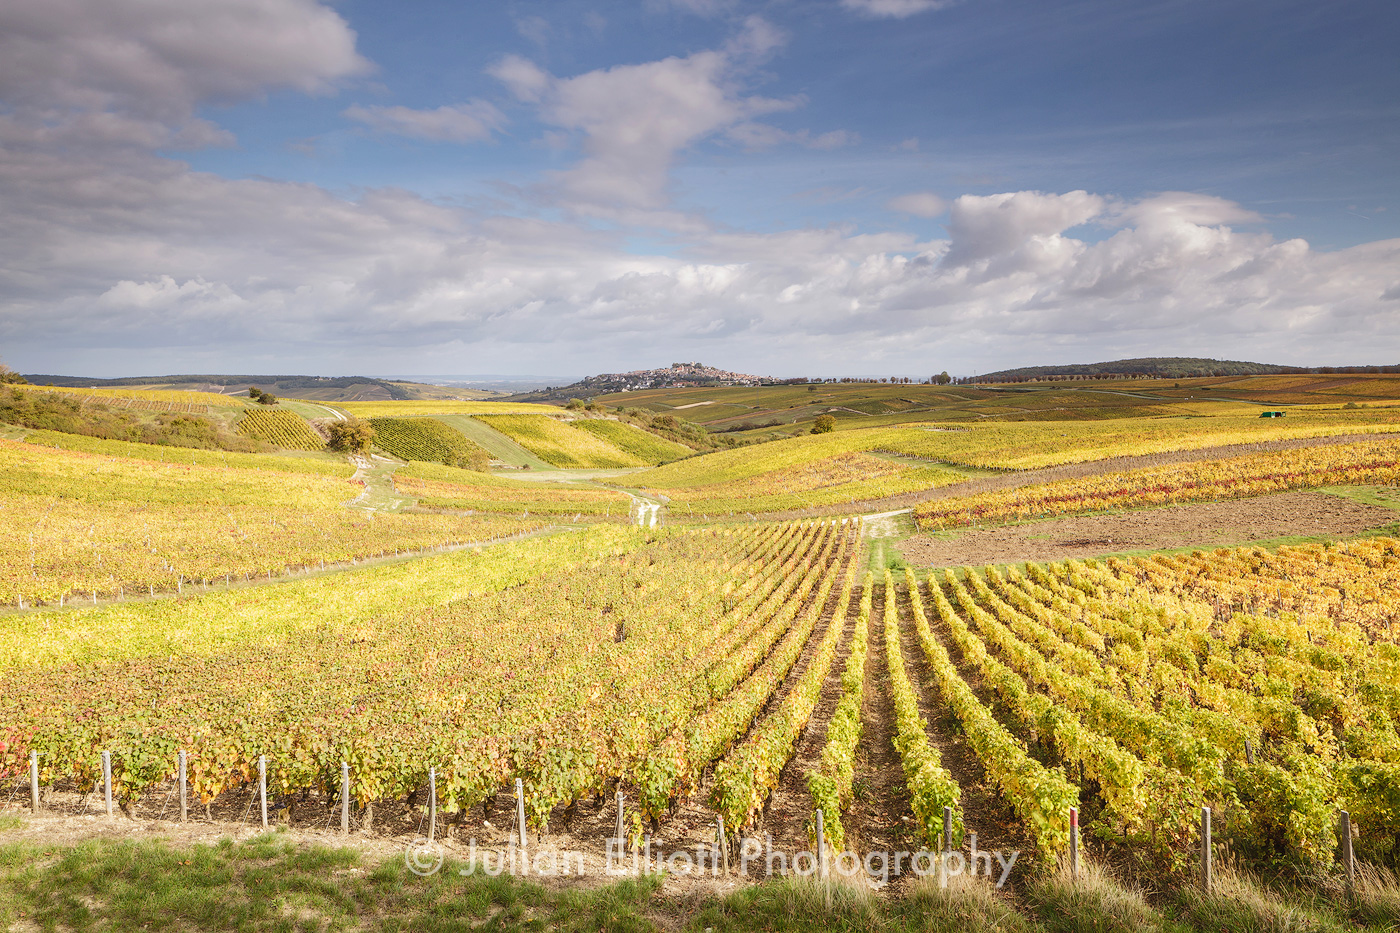 Autumn color in the vineyards of Sancerre